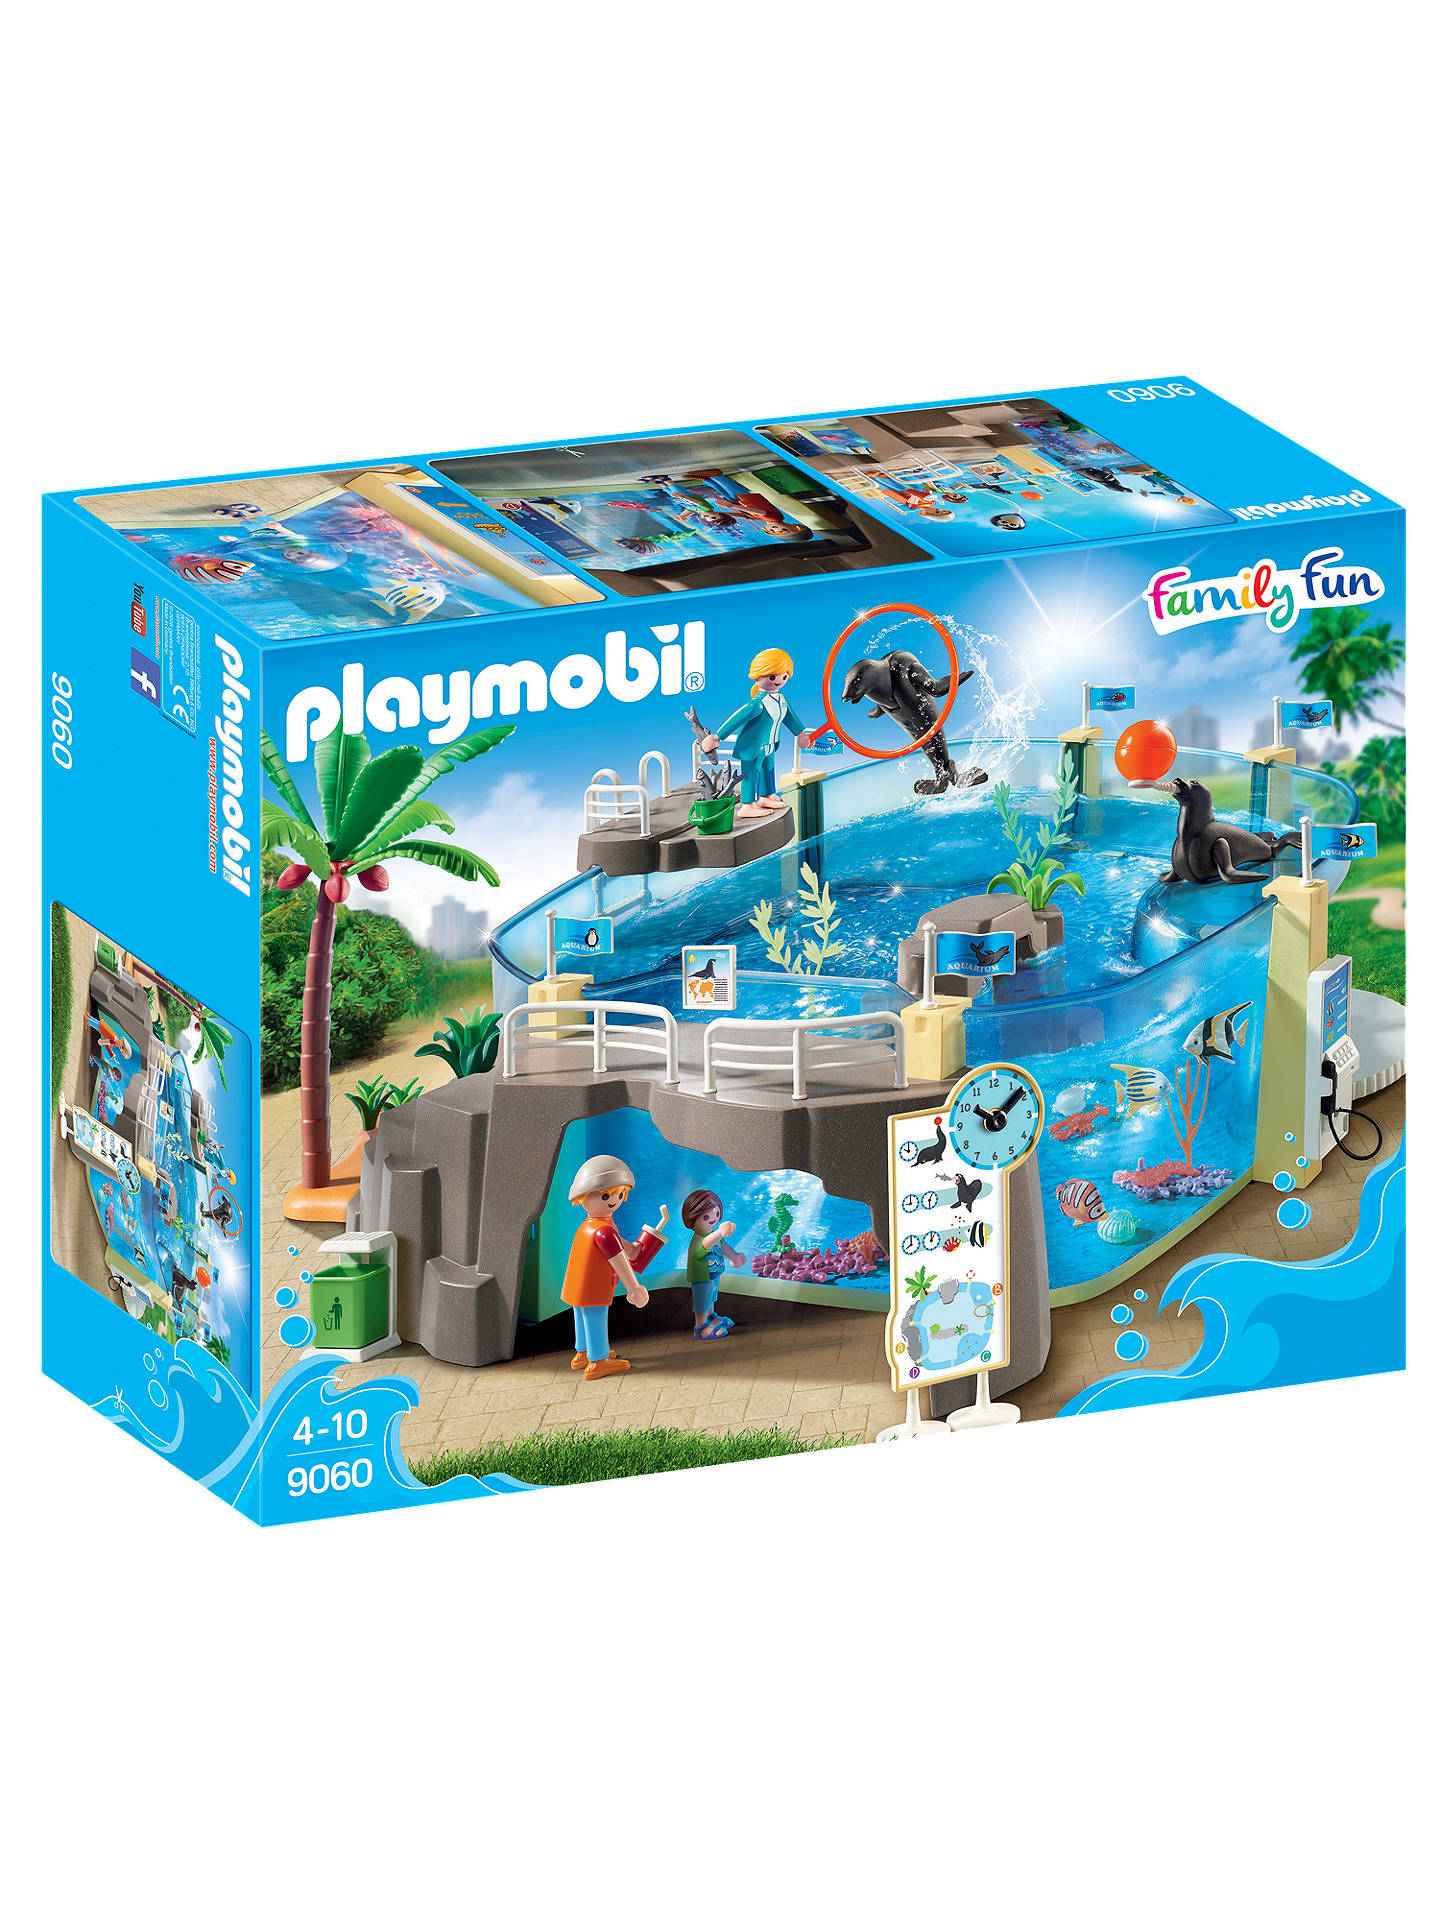 BuyPlaymobil Aquarium 9060 Aquarium Play Set Online at johnlewis.com